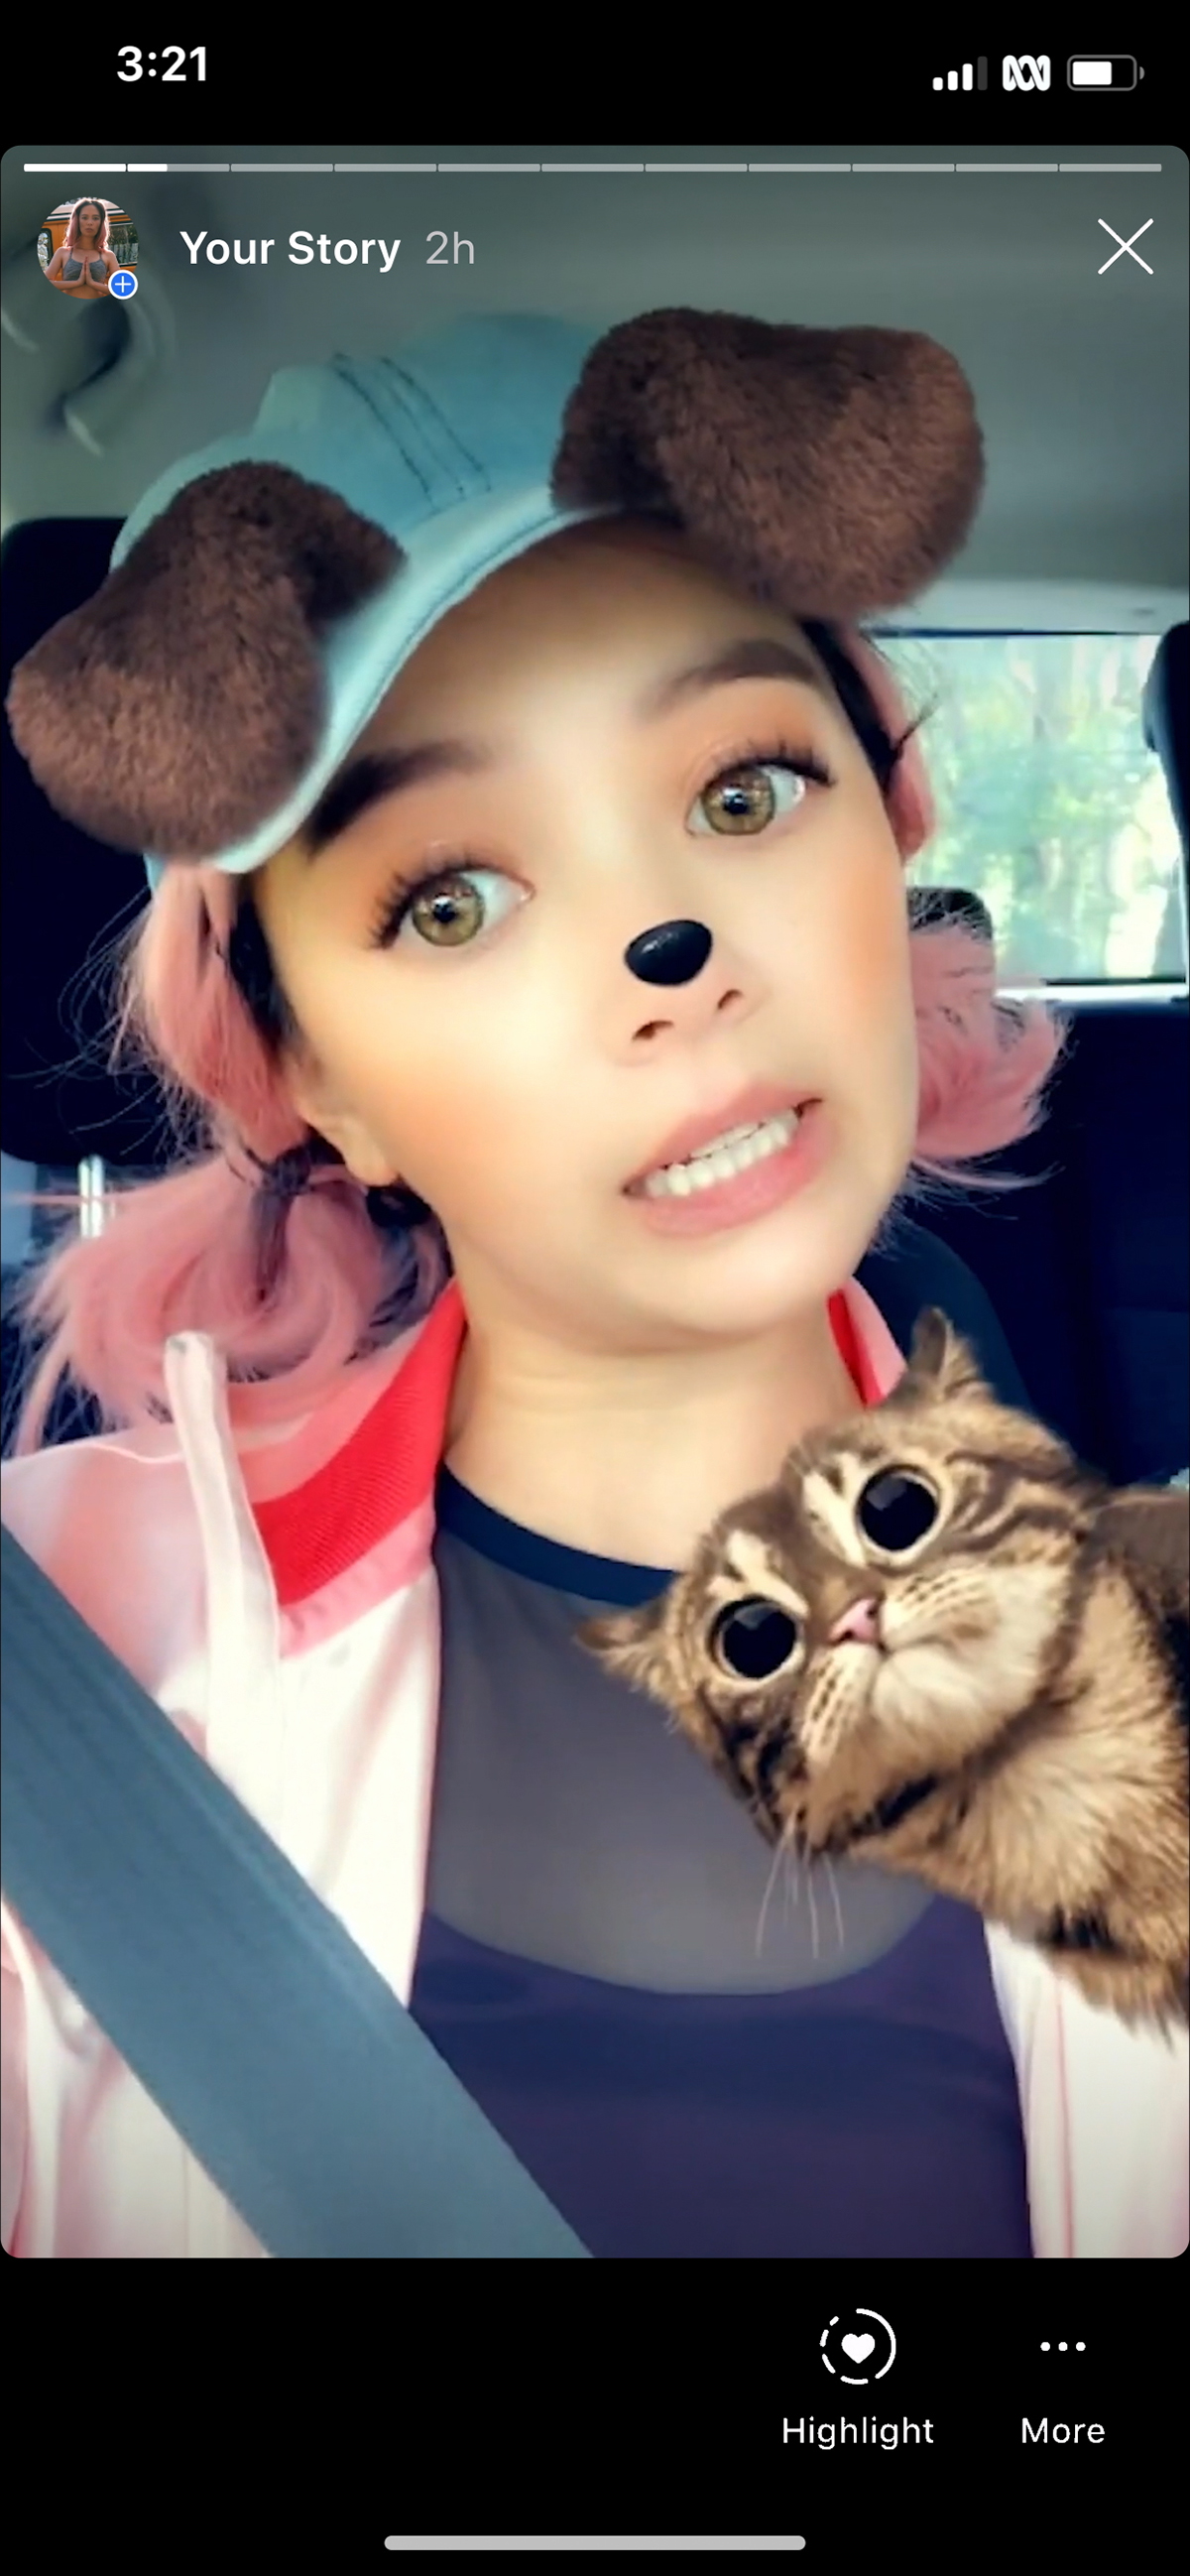 A screenshot of a woman sitting in car and posing in selfie mode with Instagram filters on top of face.